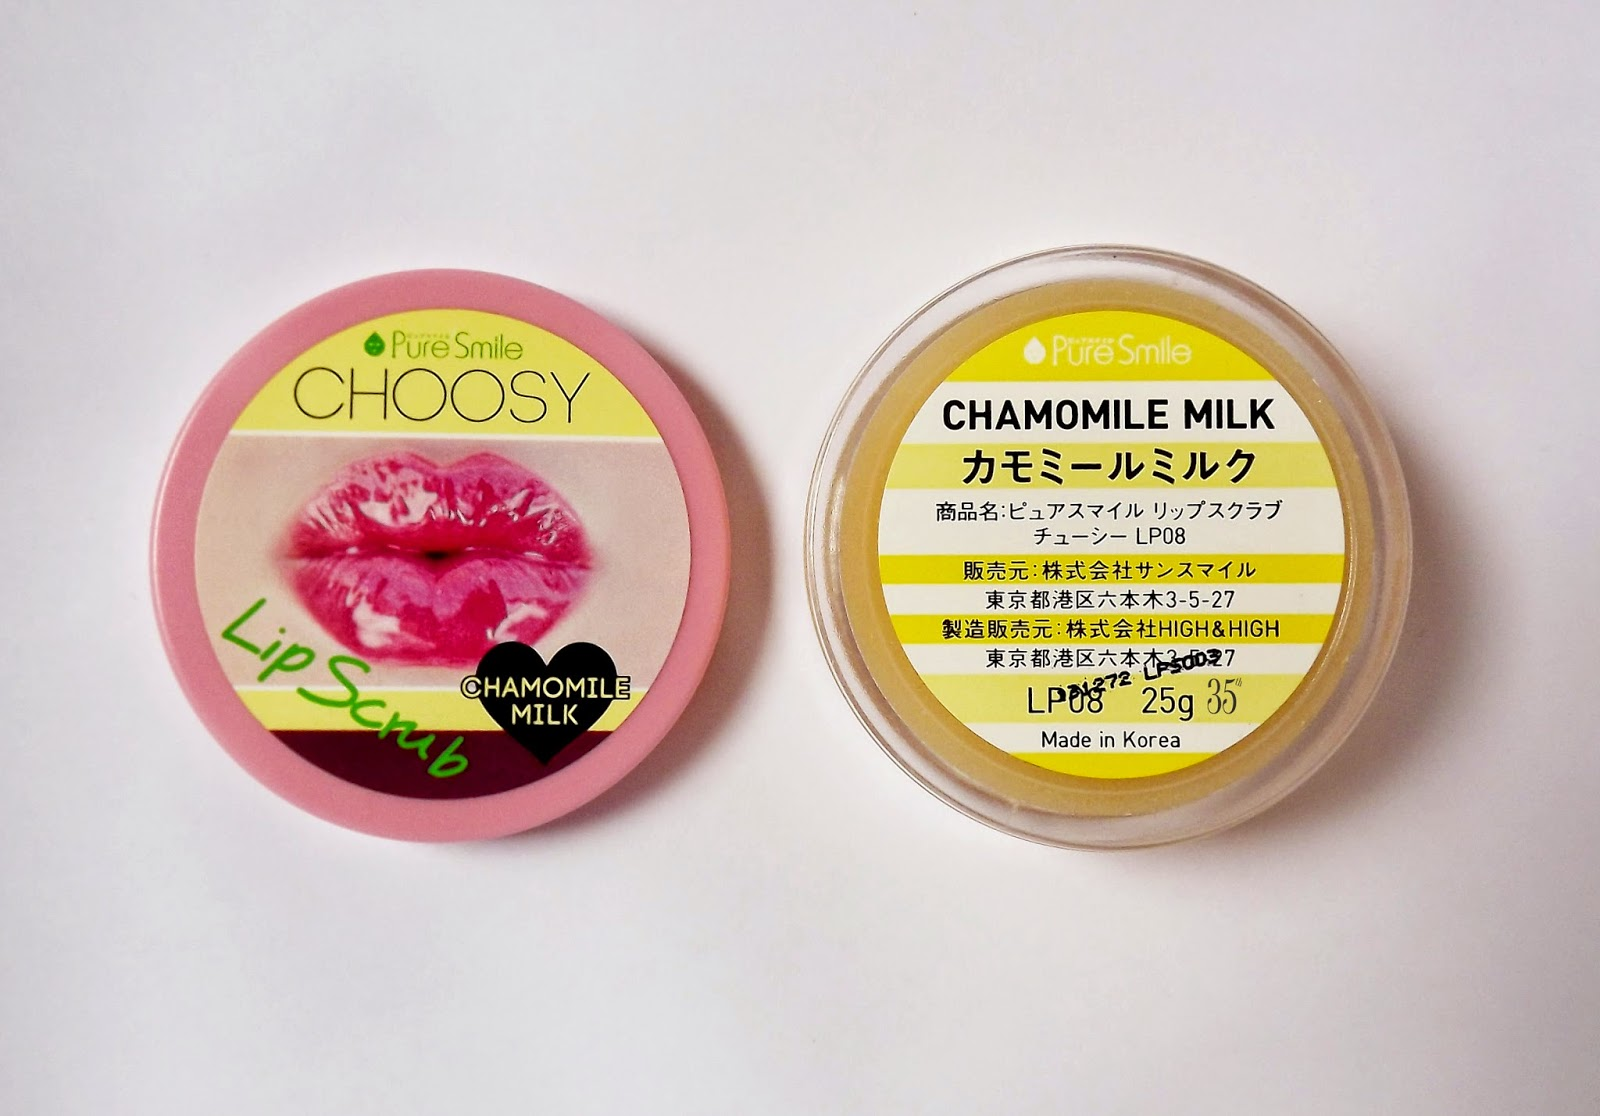 Pure Smile Choosy Lip scrub in Chamomile Milk